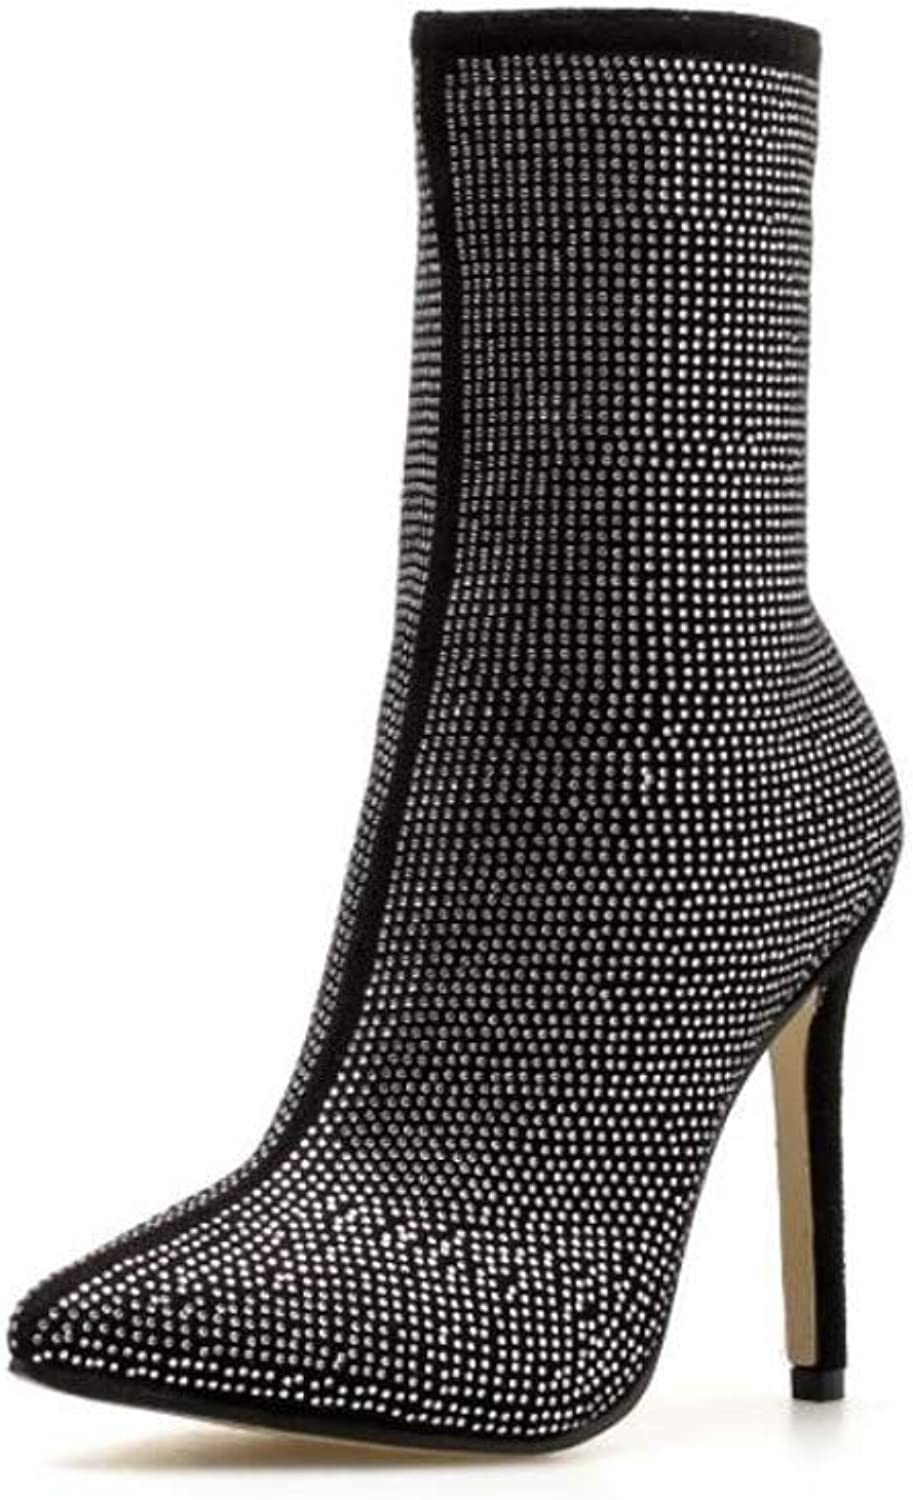 Ladies' Boots, Autumn and Winter, Pointed Rhinestones, Fine Super High Heel Boots